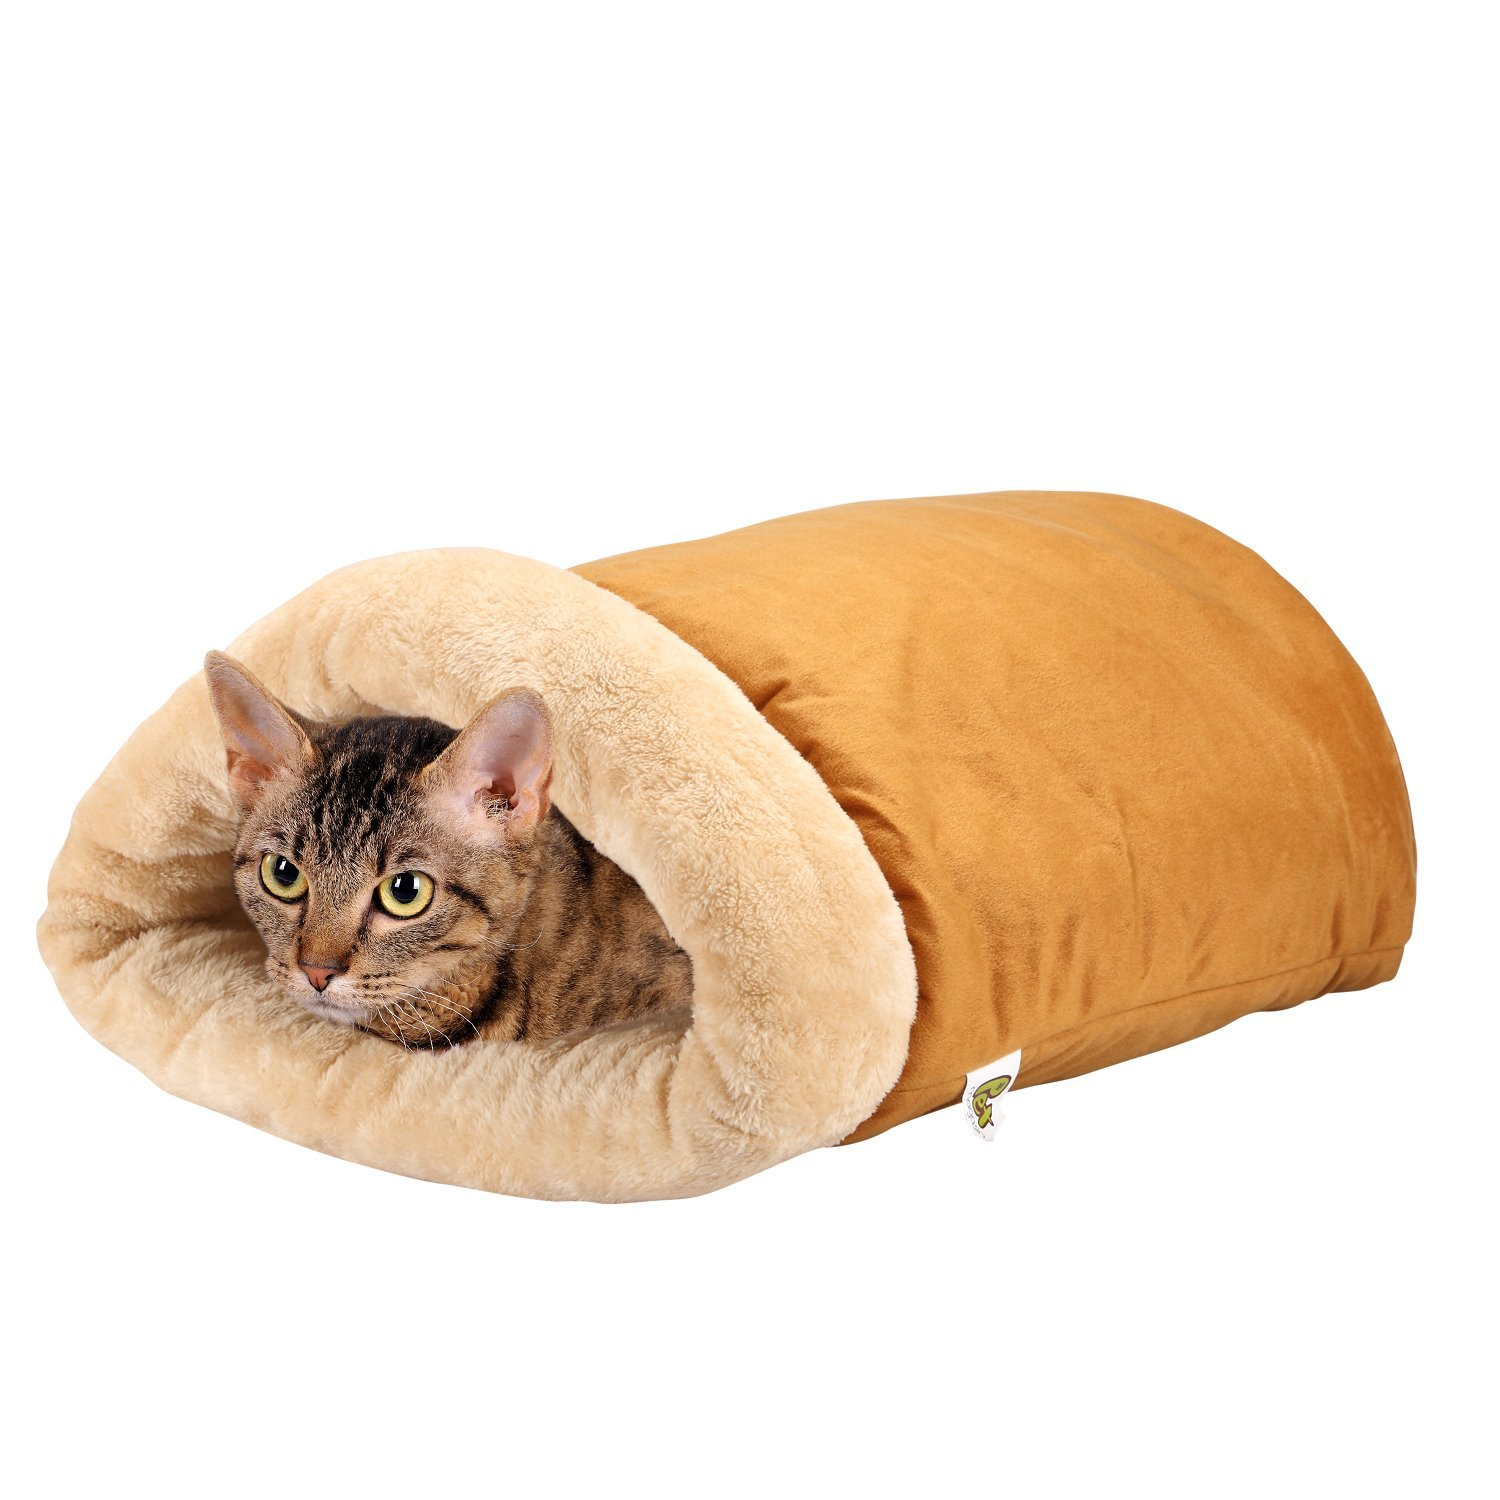 Pet Magasin Cat Cave - A Four-Way Snuggly Bed and Hideaway for Cats